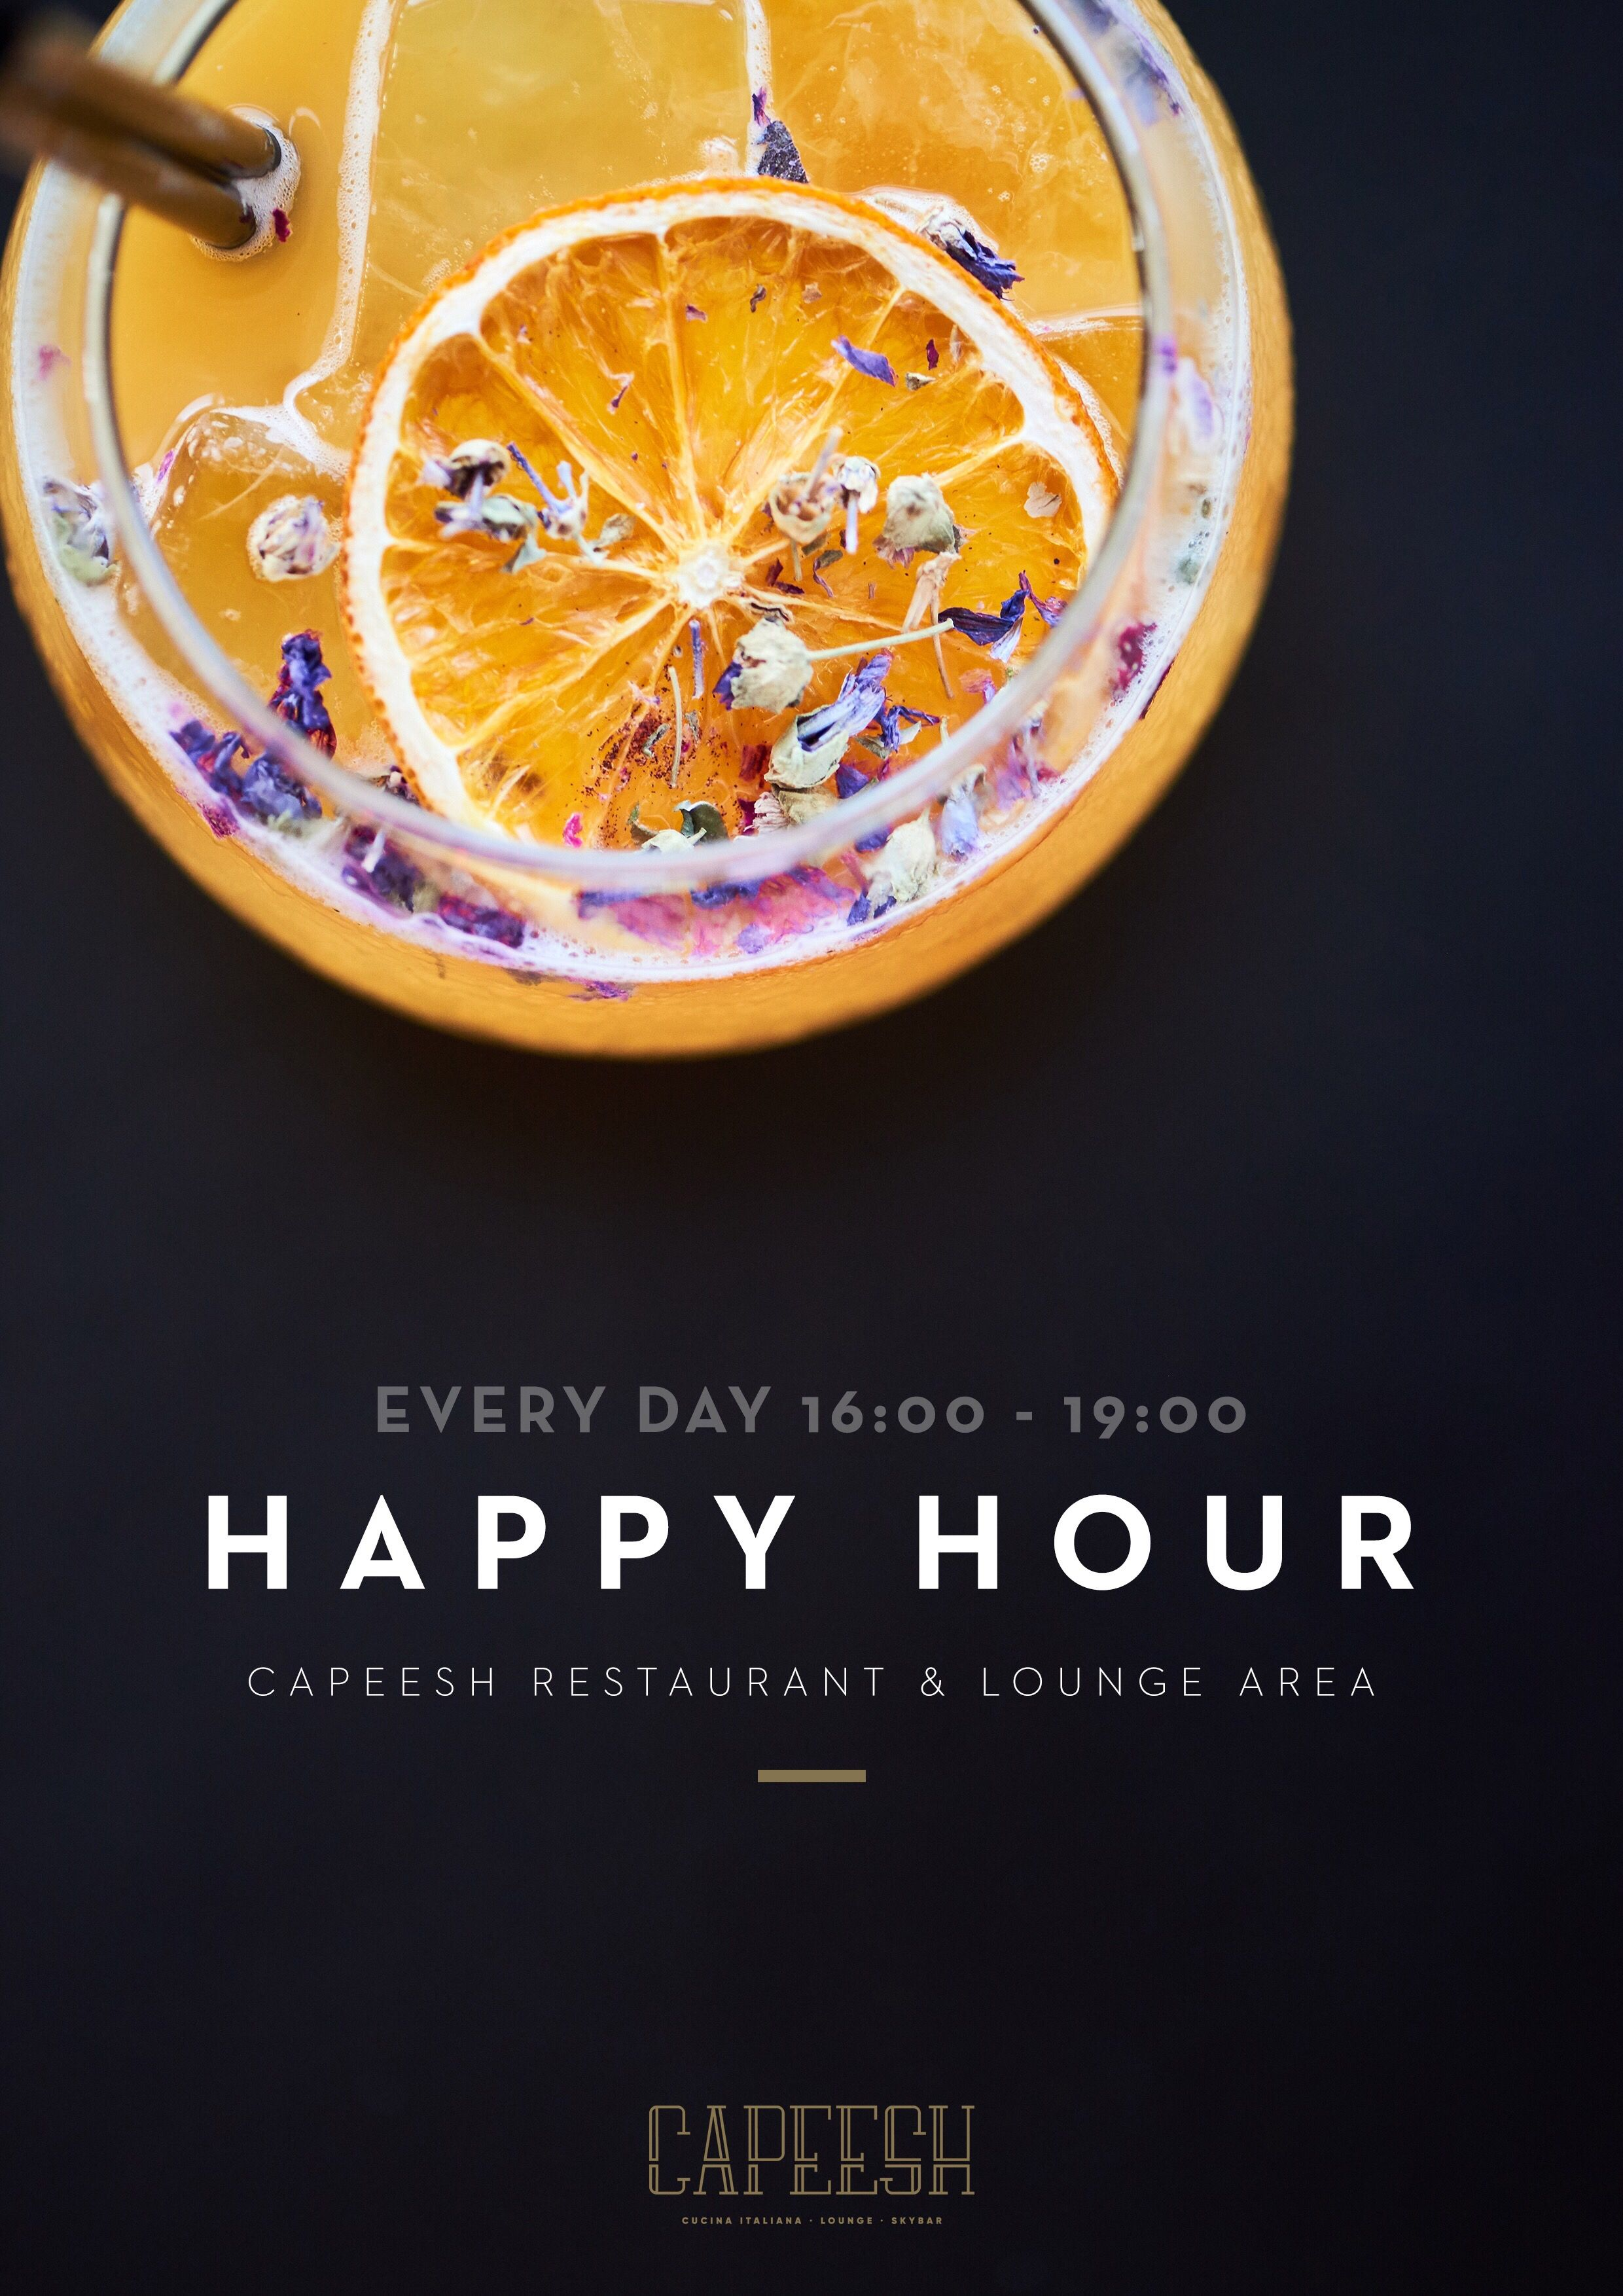 Restaurant Cucina Agen Our Happy Hour Special For Our Lounge Area And Capeesh Restaurant